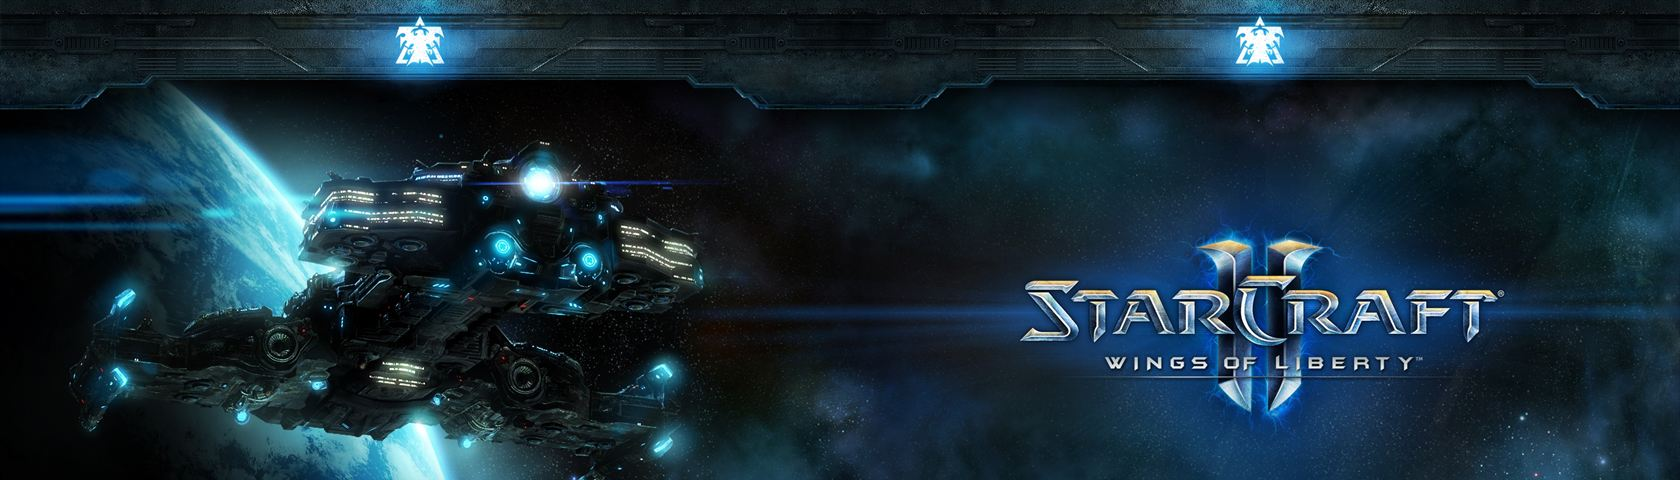 Starcraft 2 - Battlecruiser